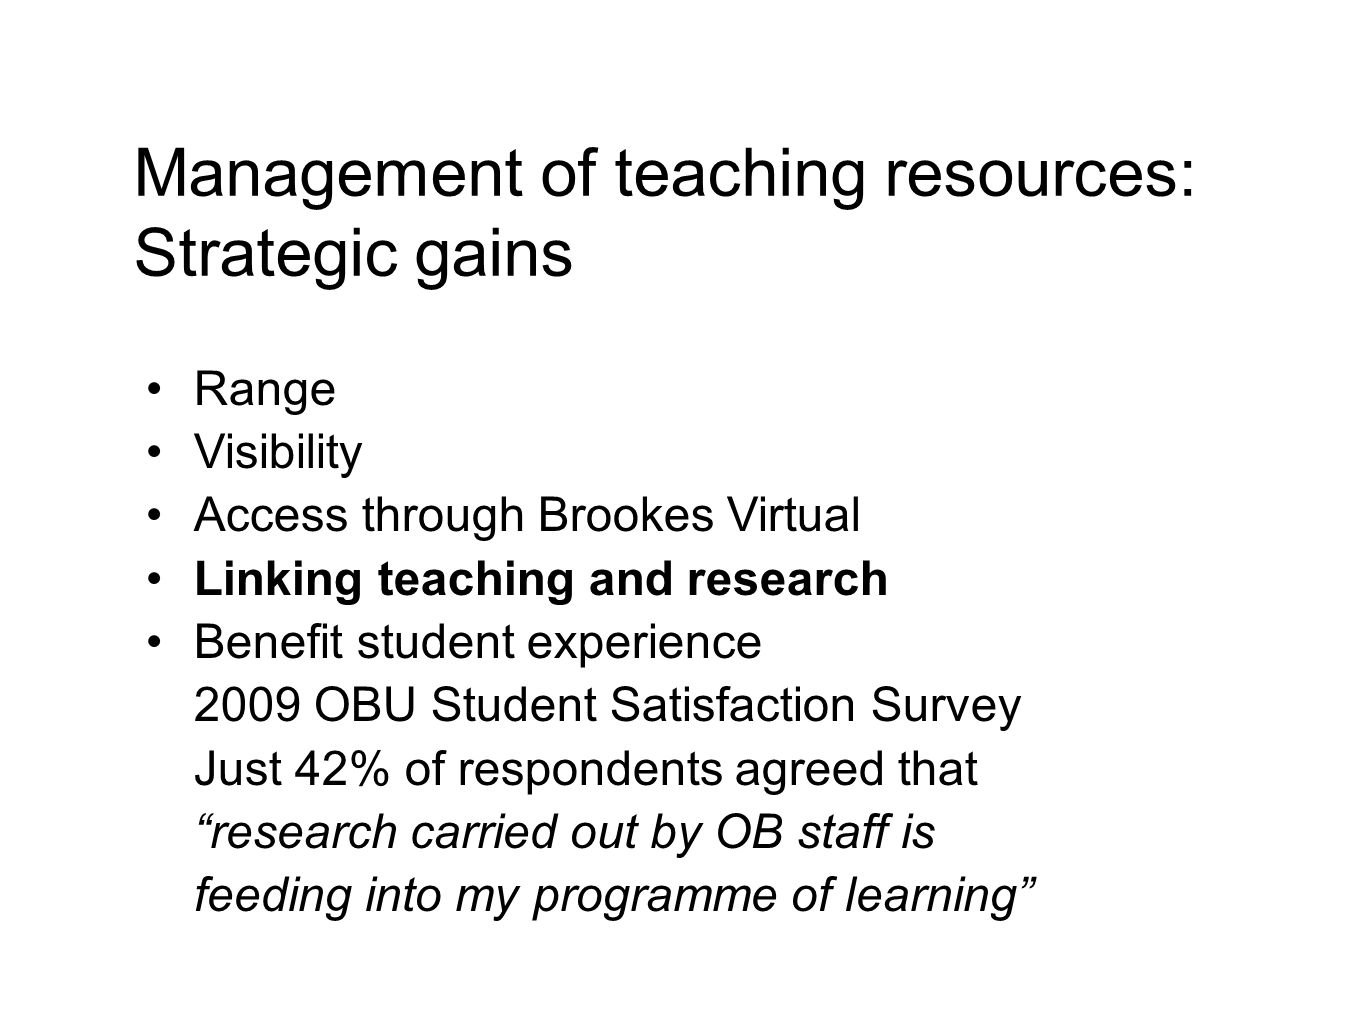 Range Visibility Access through Brookes Virtual Linking teaching and research Benefit student experience 2009 OBU Student Satisfaction Survey Just 42% of respondents agreed that research carried out by OB staff is feeding into my programme of learning Management of teaching resources: Strategic gains